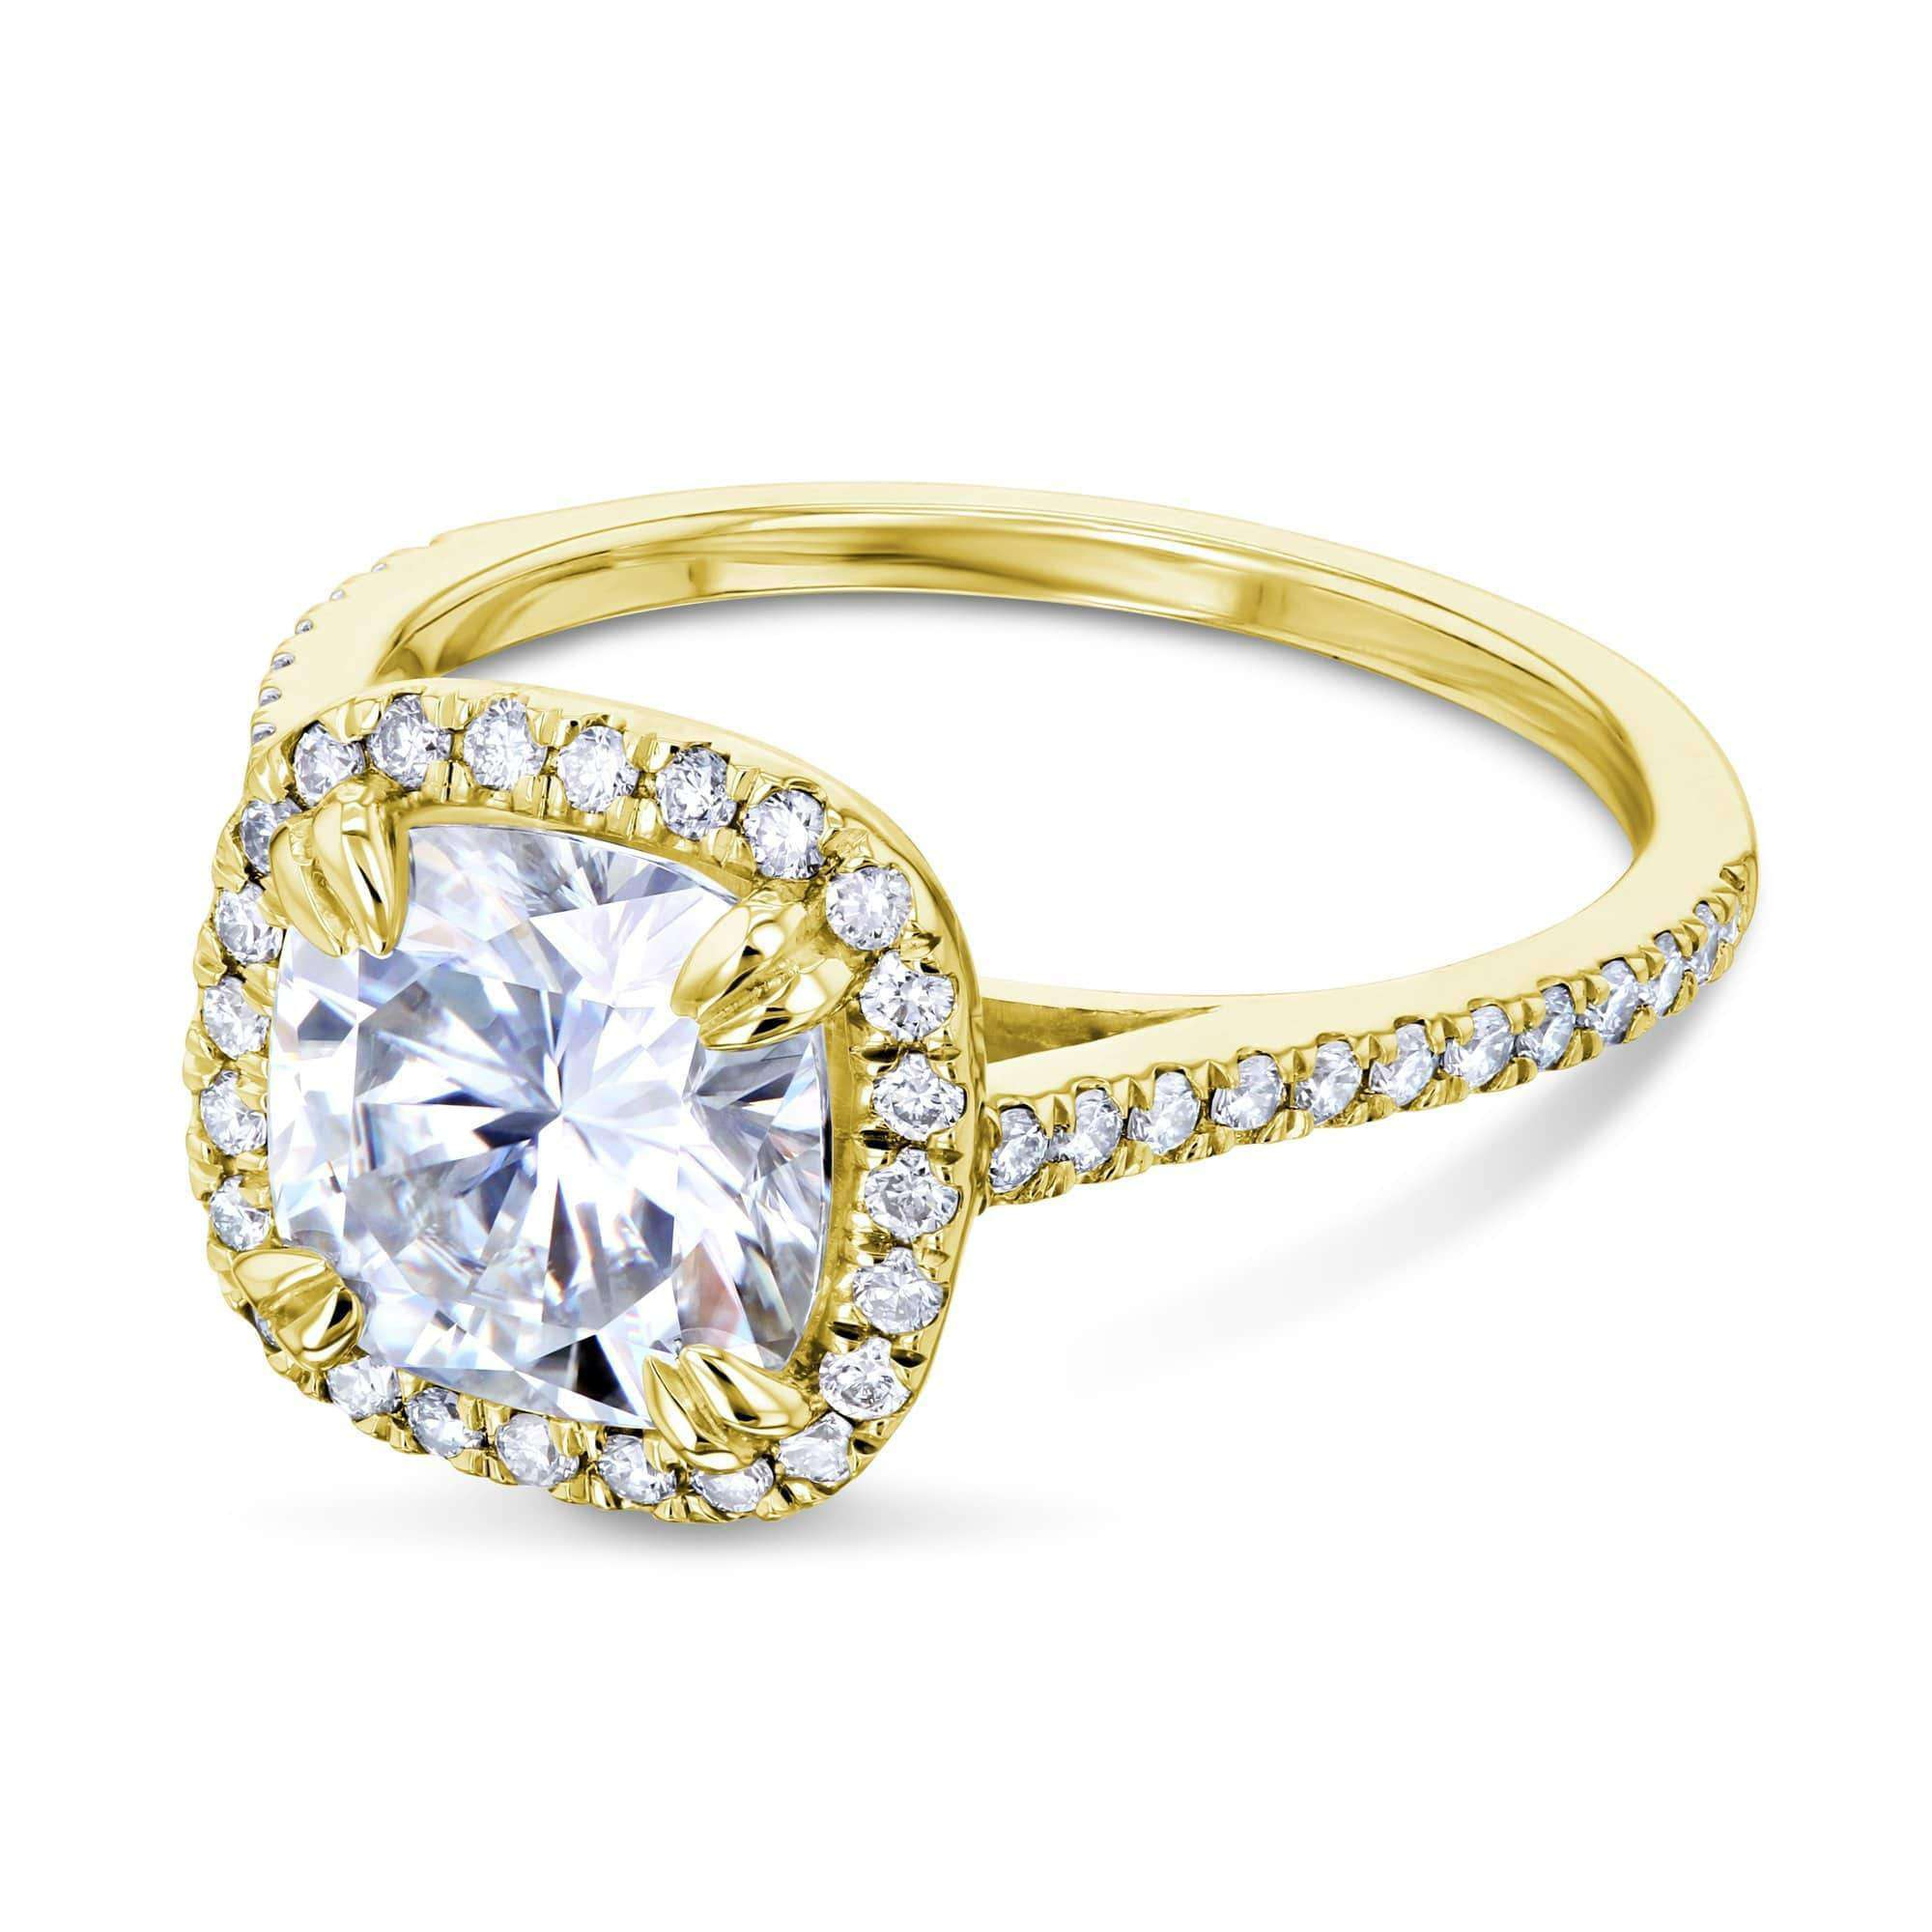 Coupons 2ct Cushion Moissanite Halo Ring - yellow-gold 9.5 Kobelli F-G